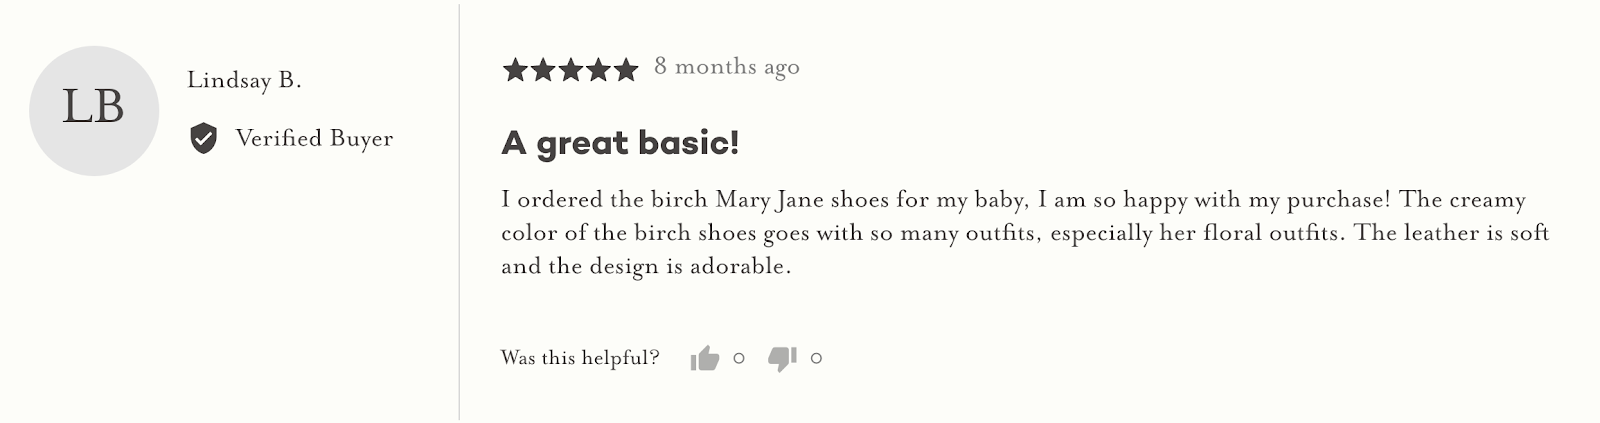 """This image shows a screen capture of a review on an website. Lindsay B, a verified buyer, gave 5 stars to the product, 8 months ago, and said: """"A great basic! I ordered the birch Mary Jane shoes for my baby, I am so happy with my purchase! The creamy color of the birch shoes goes with so many outfits, especially her floral outfits. The leather is soft and the design is adorable""""."""